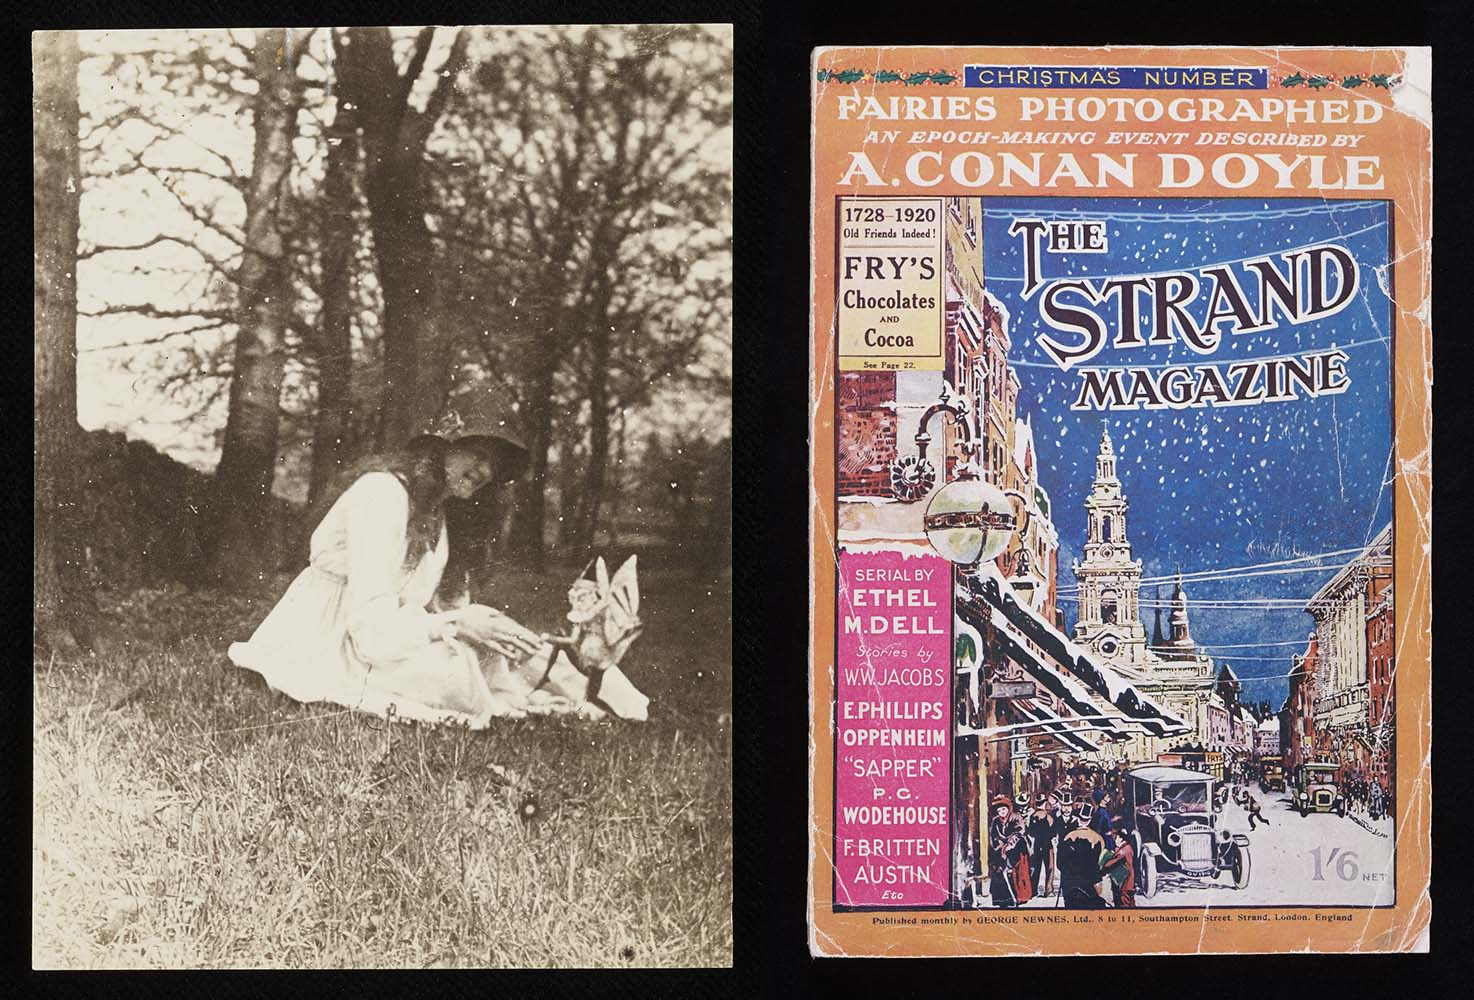 The Strand Magazine and one of the Cottingley Fairy photos